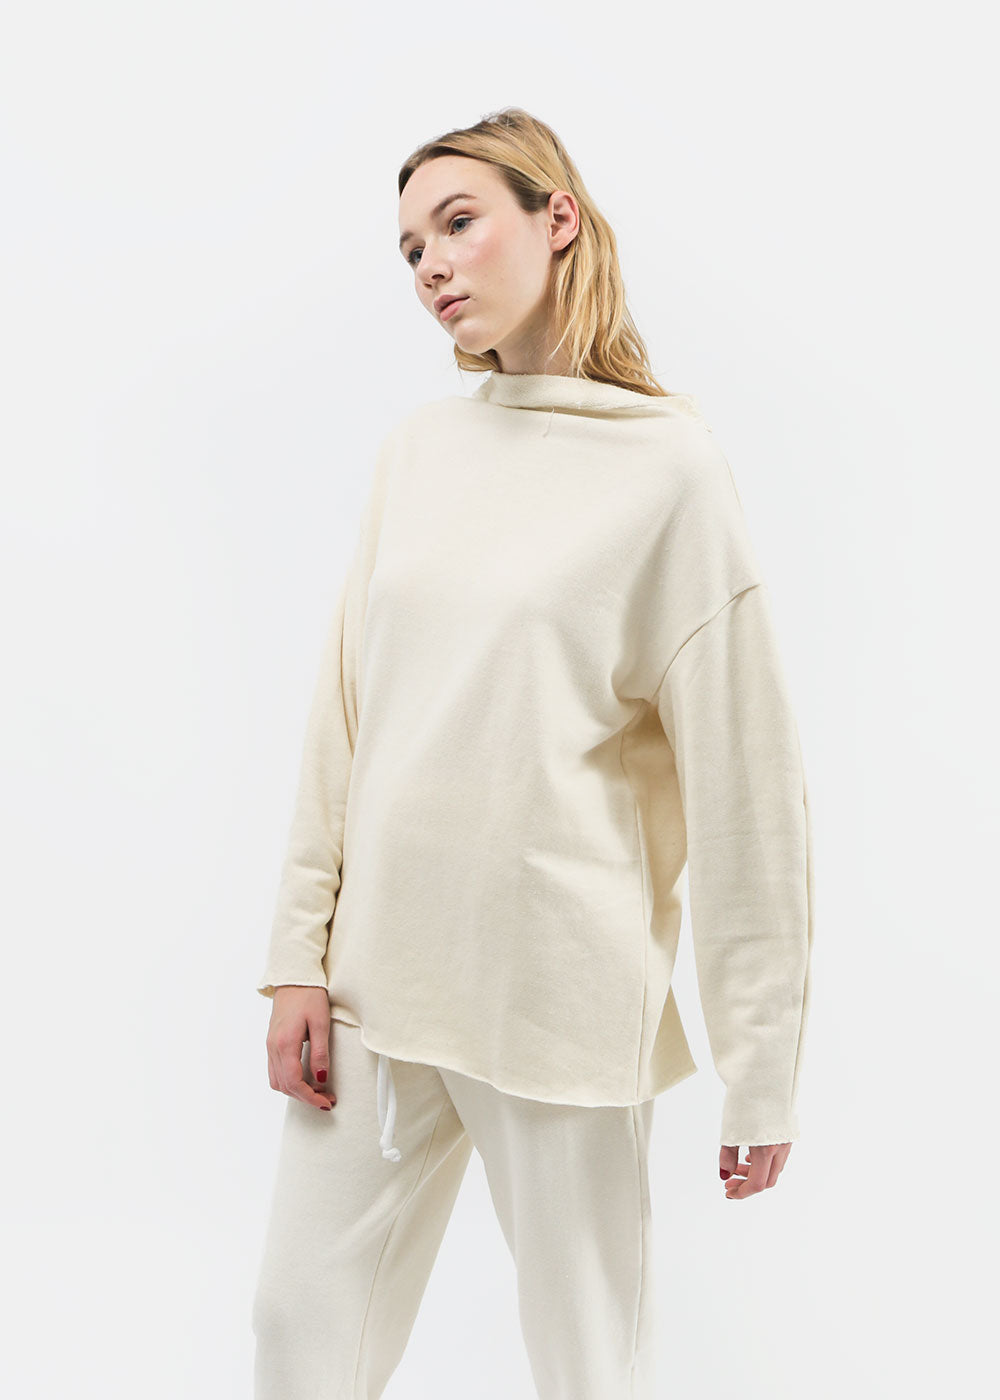 Open Air Museum Textured Sweater Top — New Classics Studios